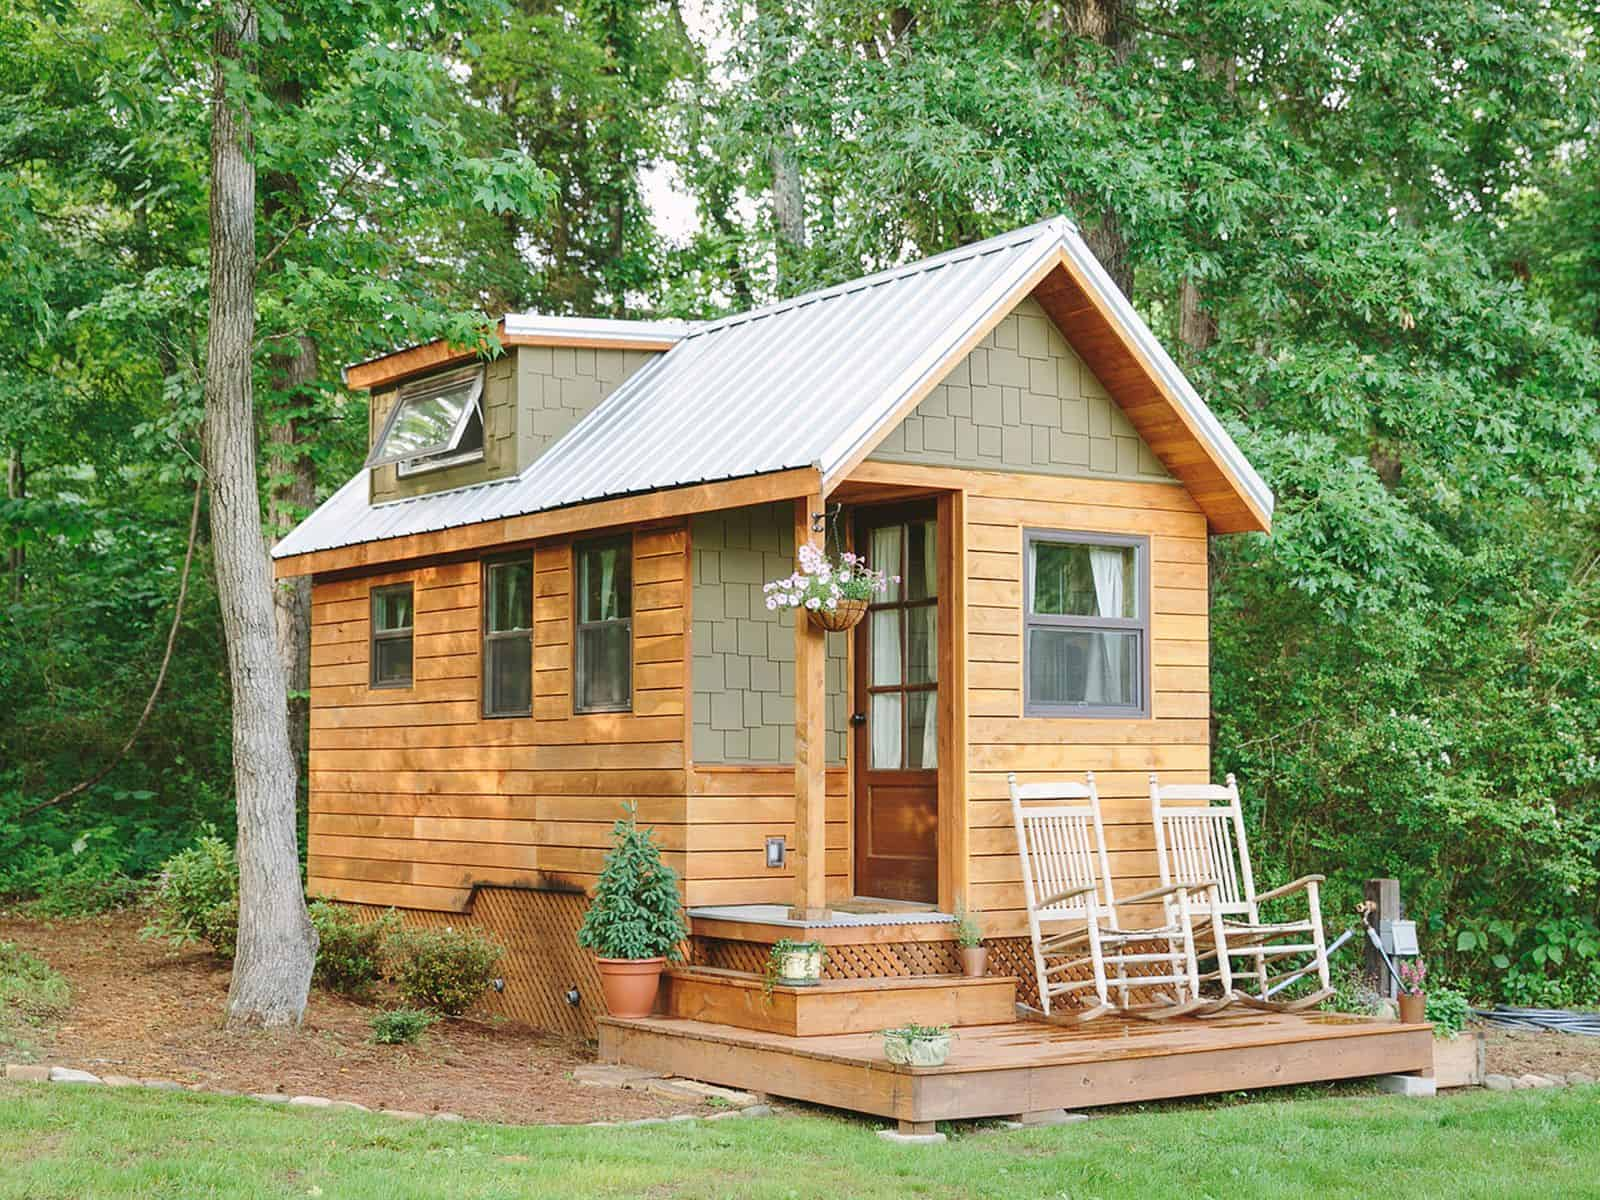 Extremely tiny homes minimalistic living in style for Home building cost per square foot texas